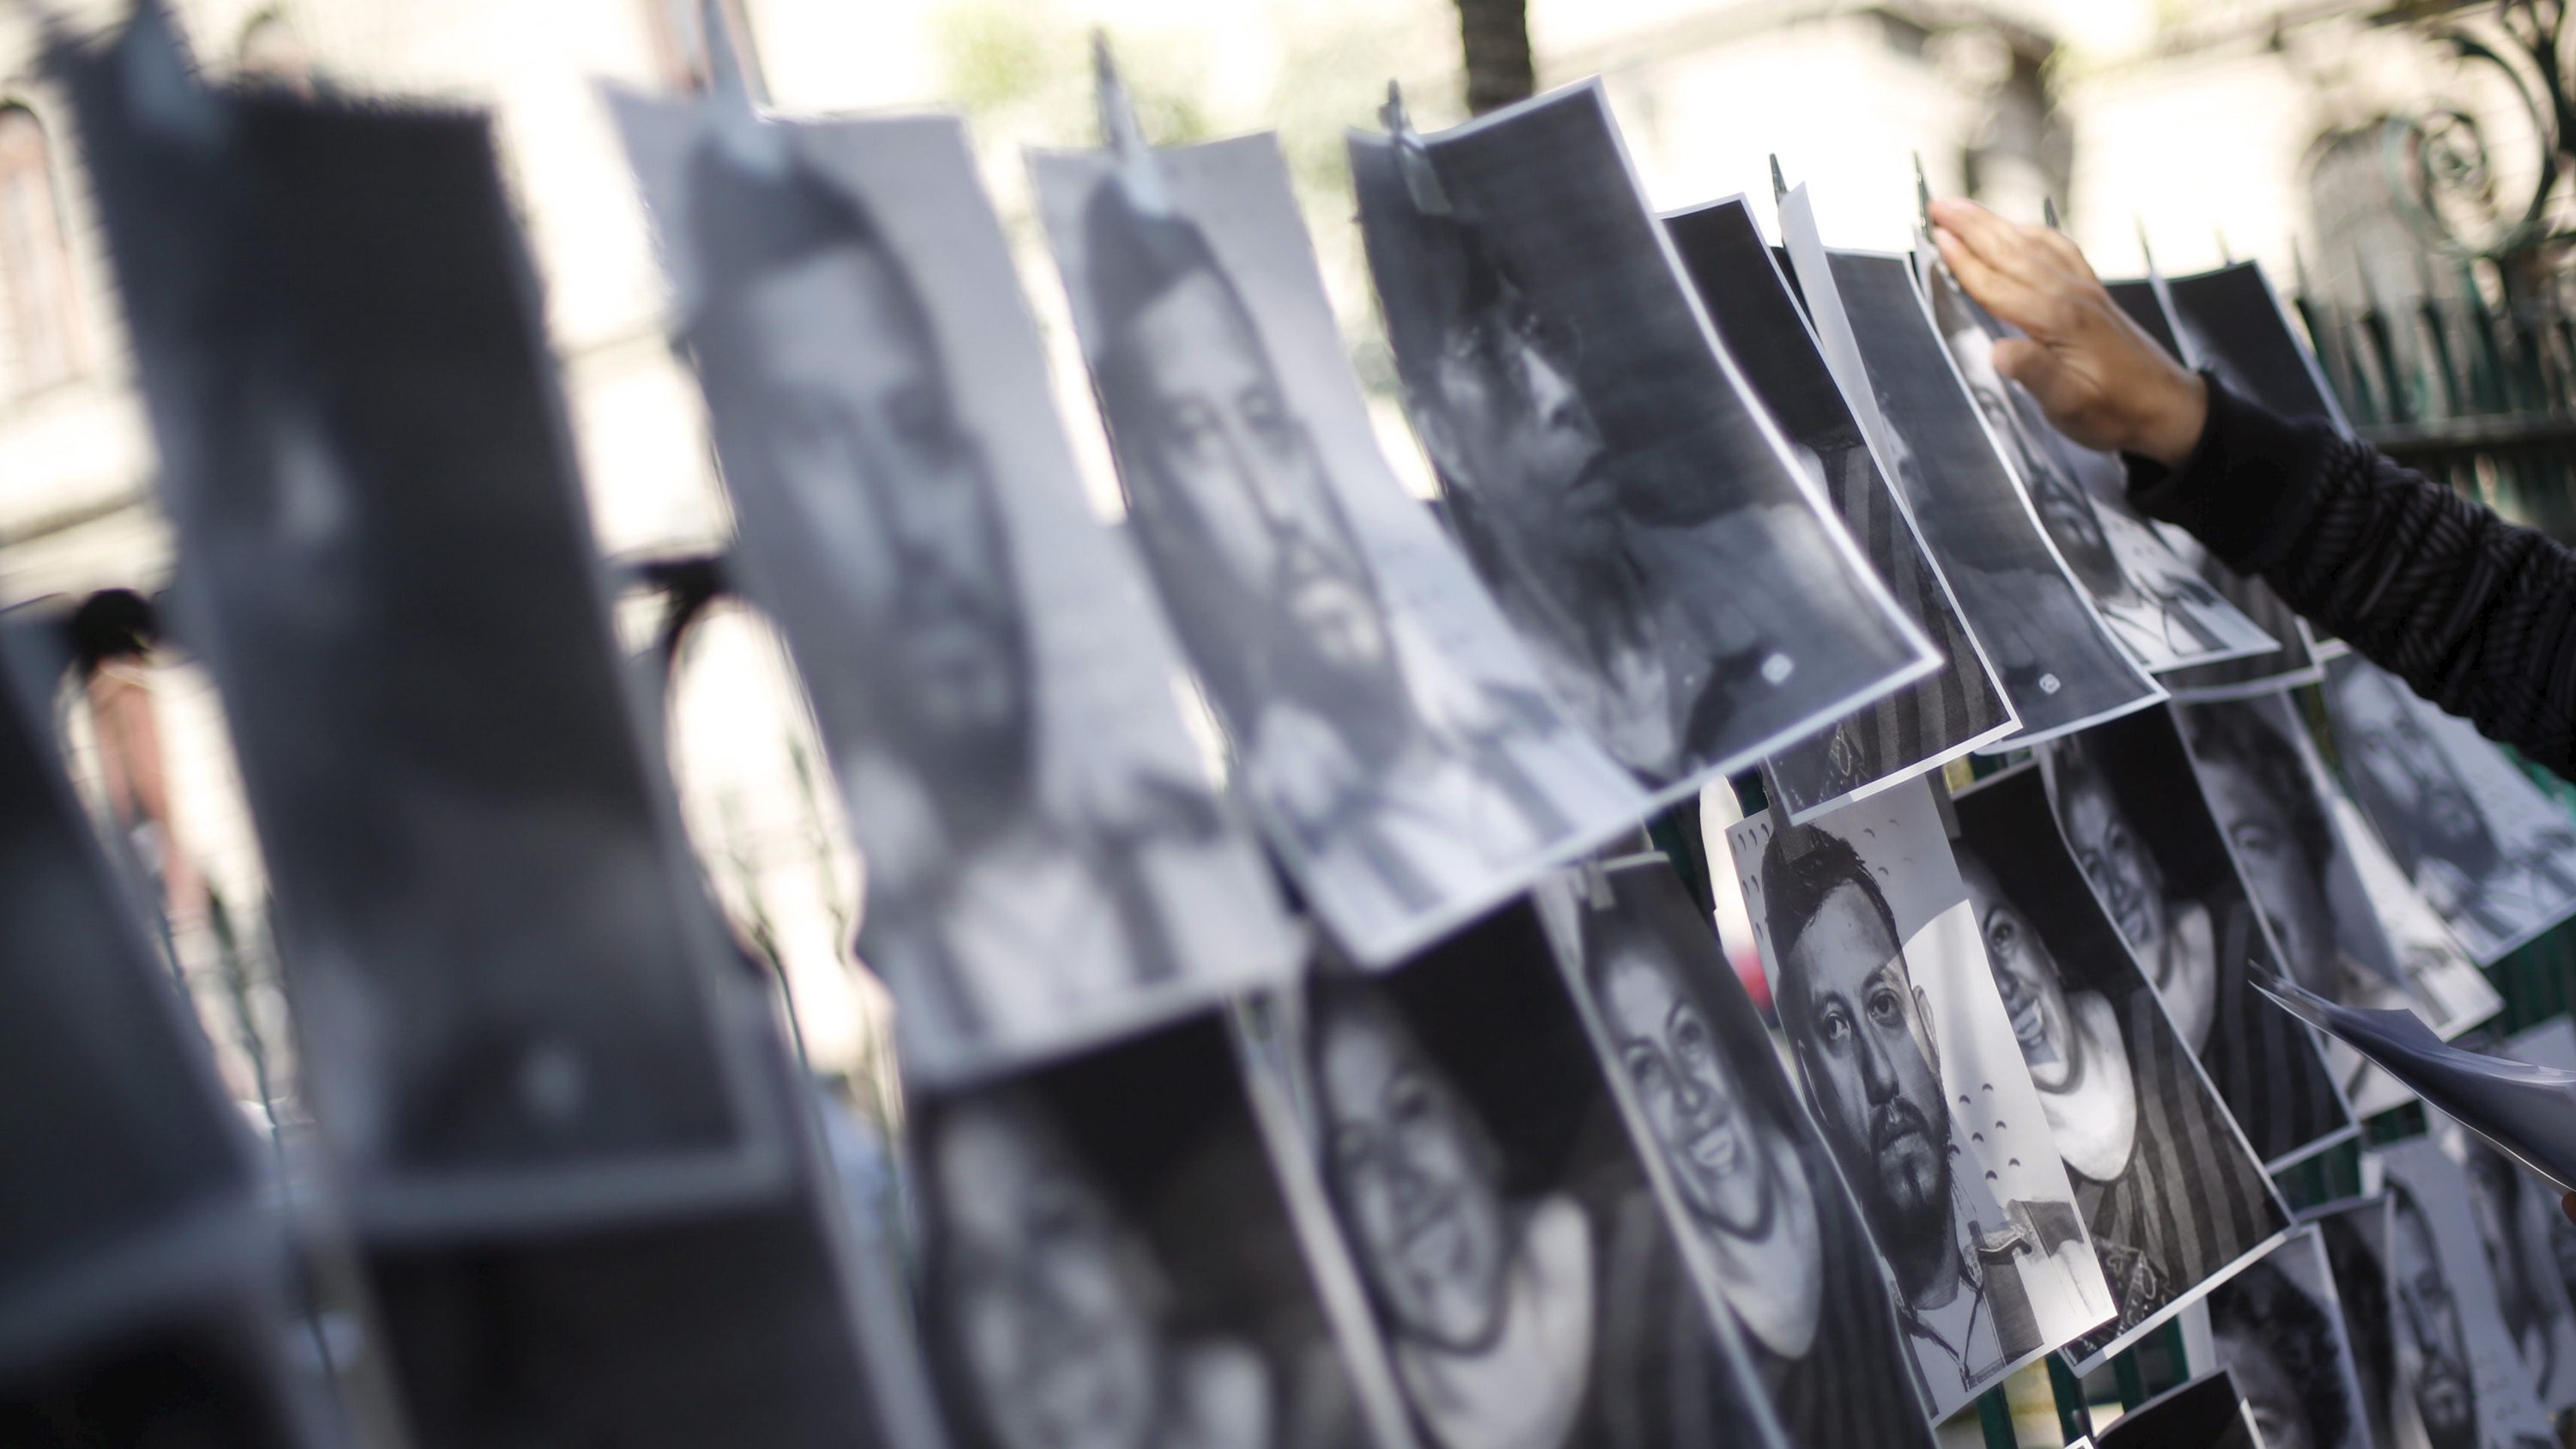 A man hangs images of murdered journalists during a demonstration